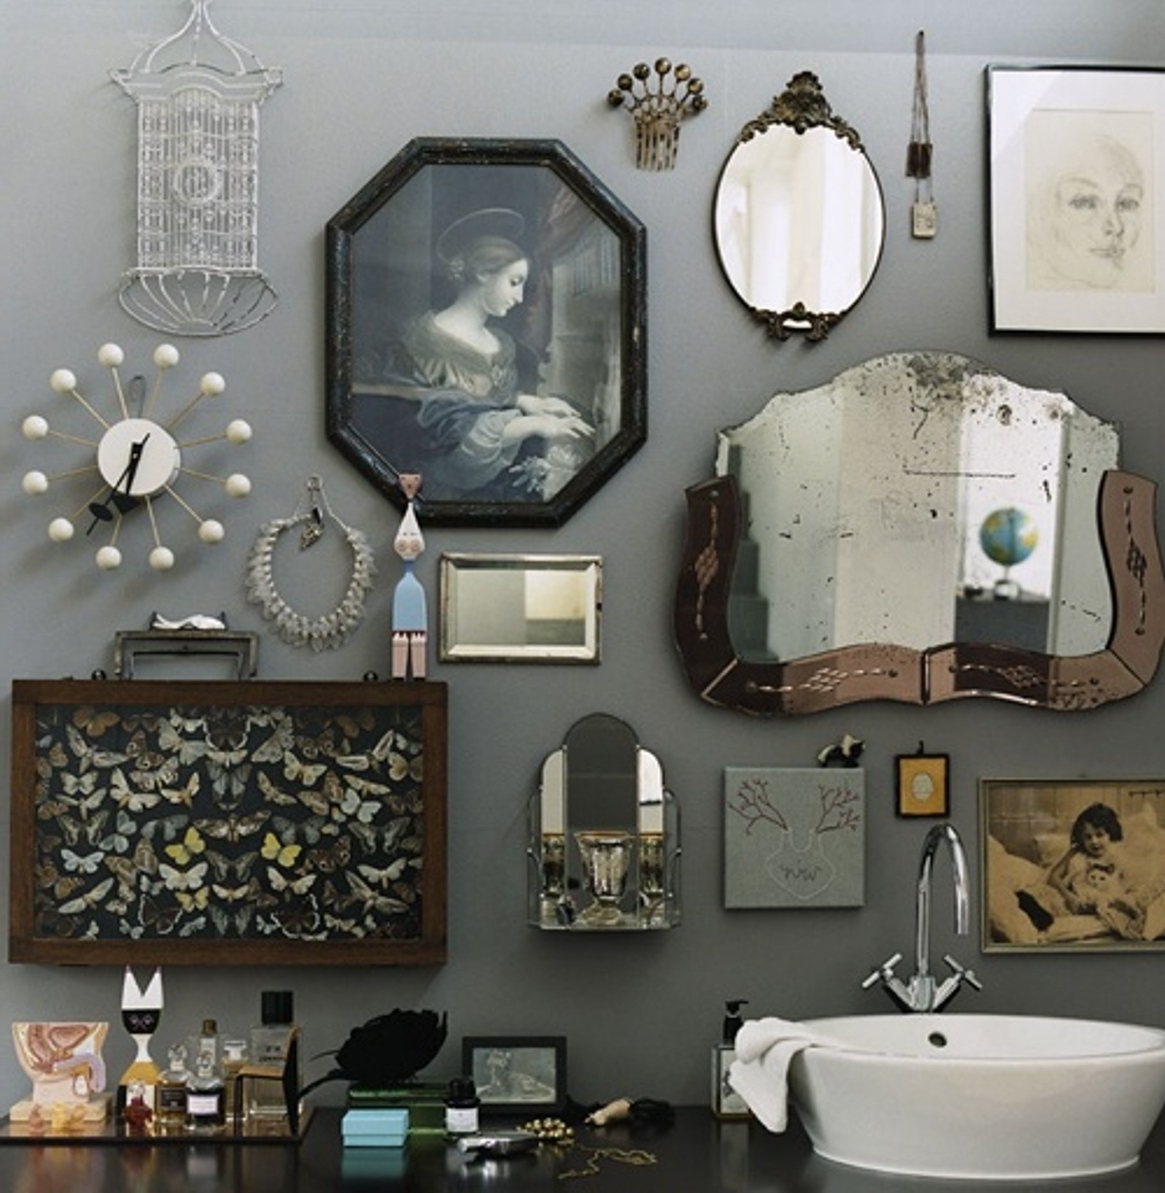 Current Charming Bathroom Wall Decor Inspirations — The Home Redesign Intended For Wall Accents For Bathroom (Gallery 3 of 15)